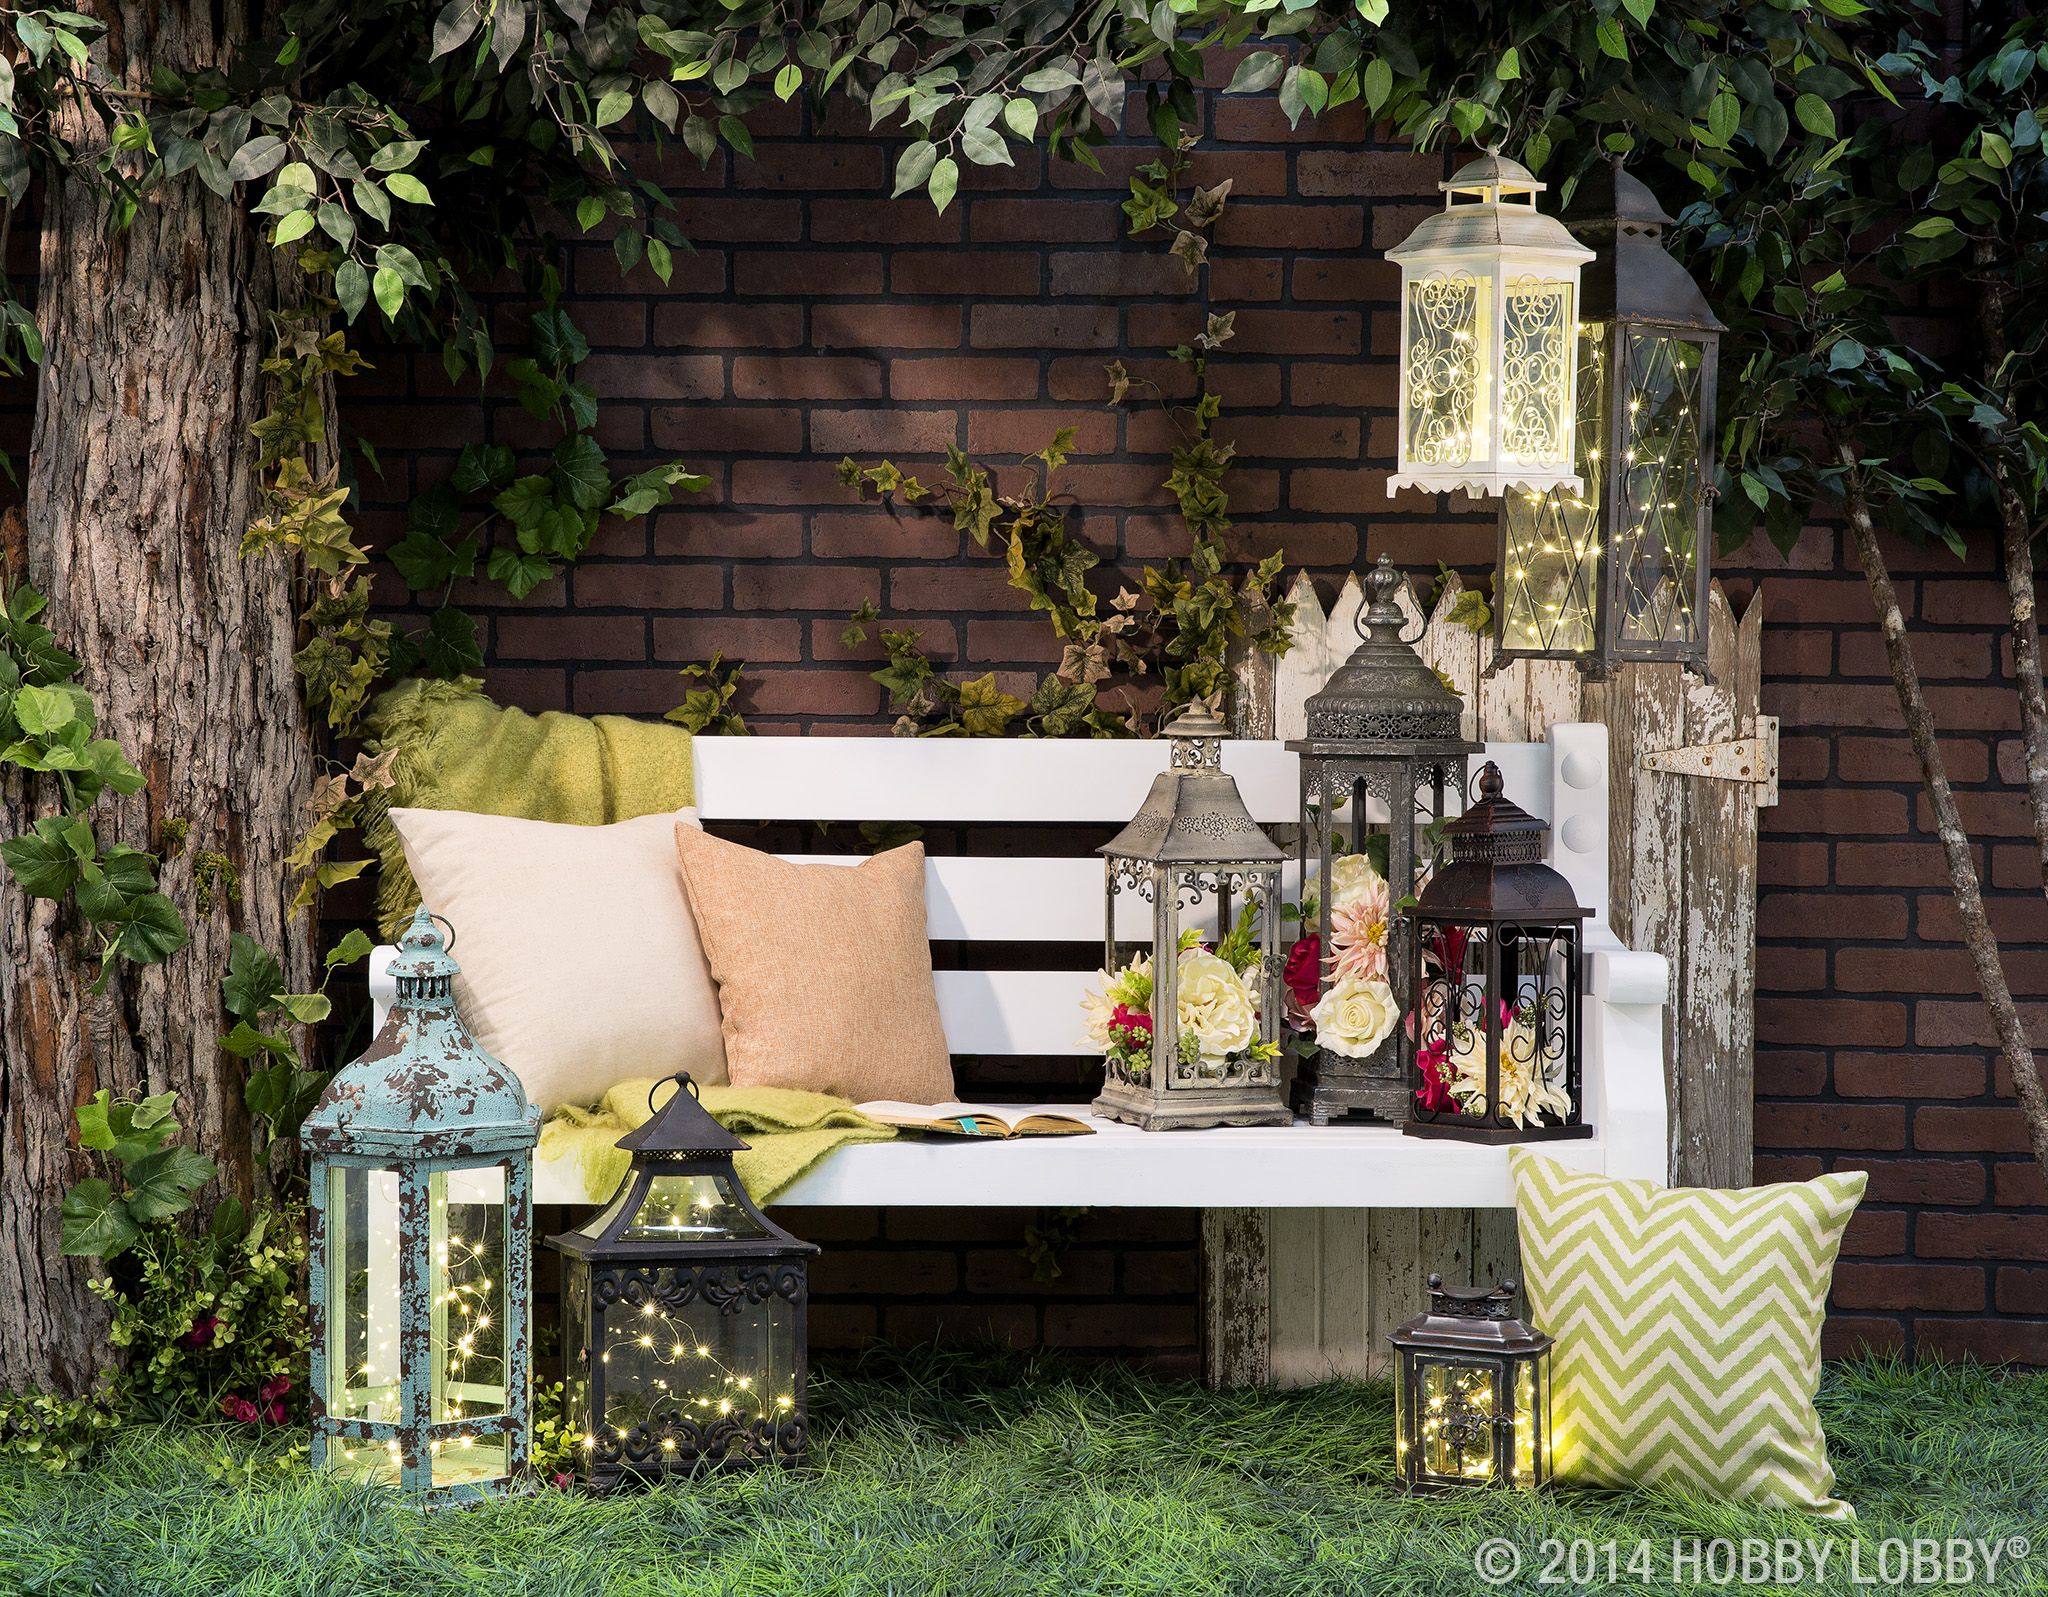 Hobby lobby garden decor  Add ambience and charm to your patio with beautiful vintagestyle